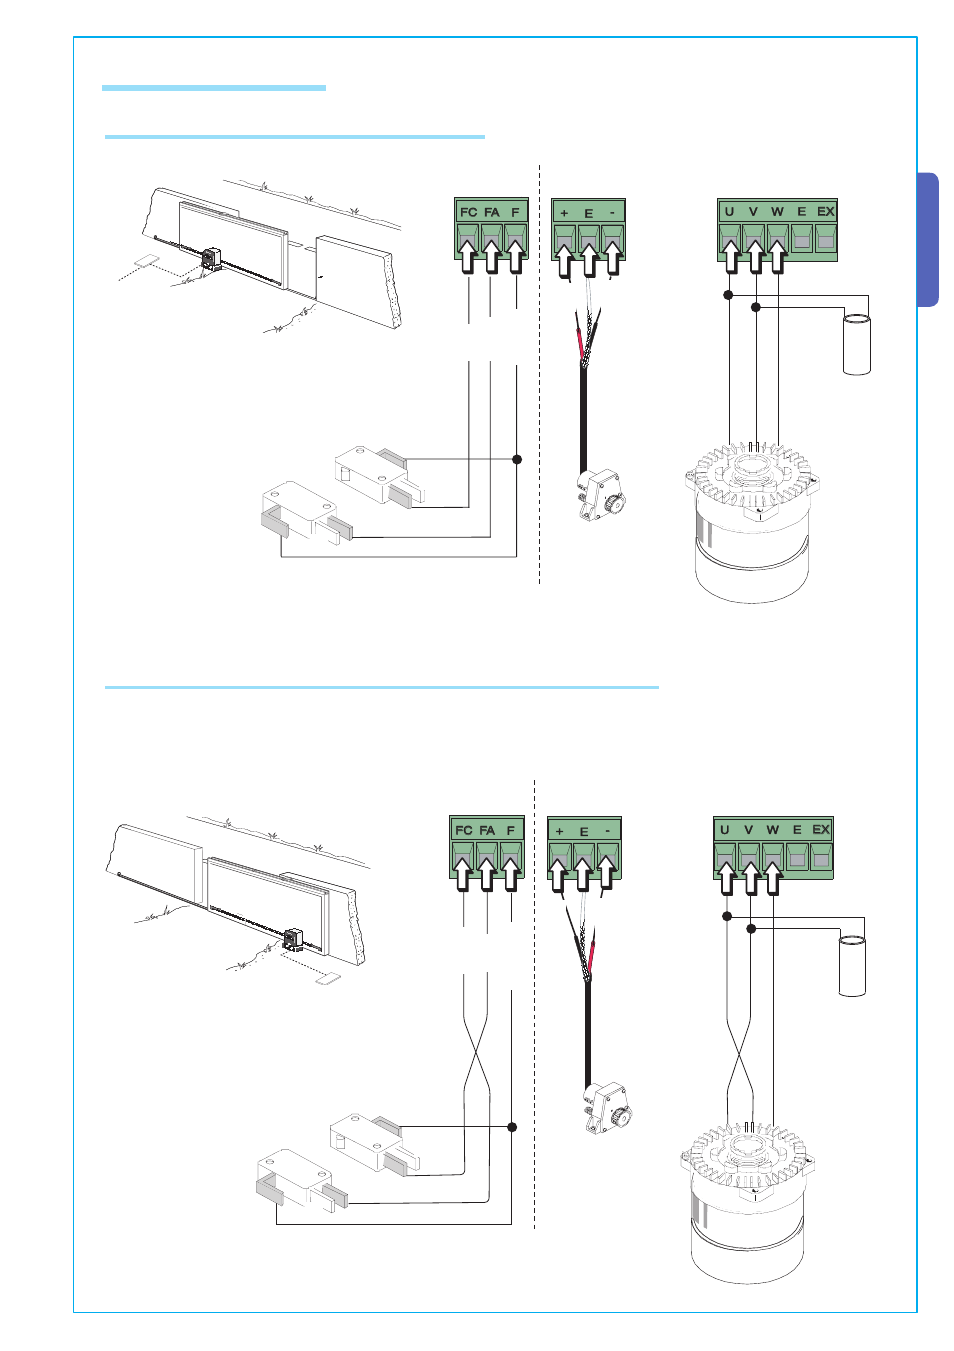 medium resolution of english 3 electrical connections connection for gear motor limit switch or encoder came bke 2200 kit user manual page 9 22